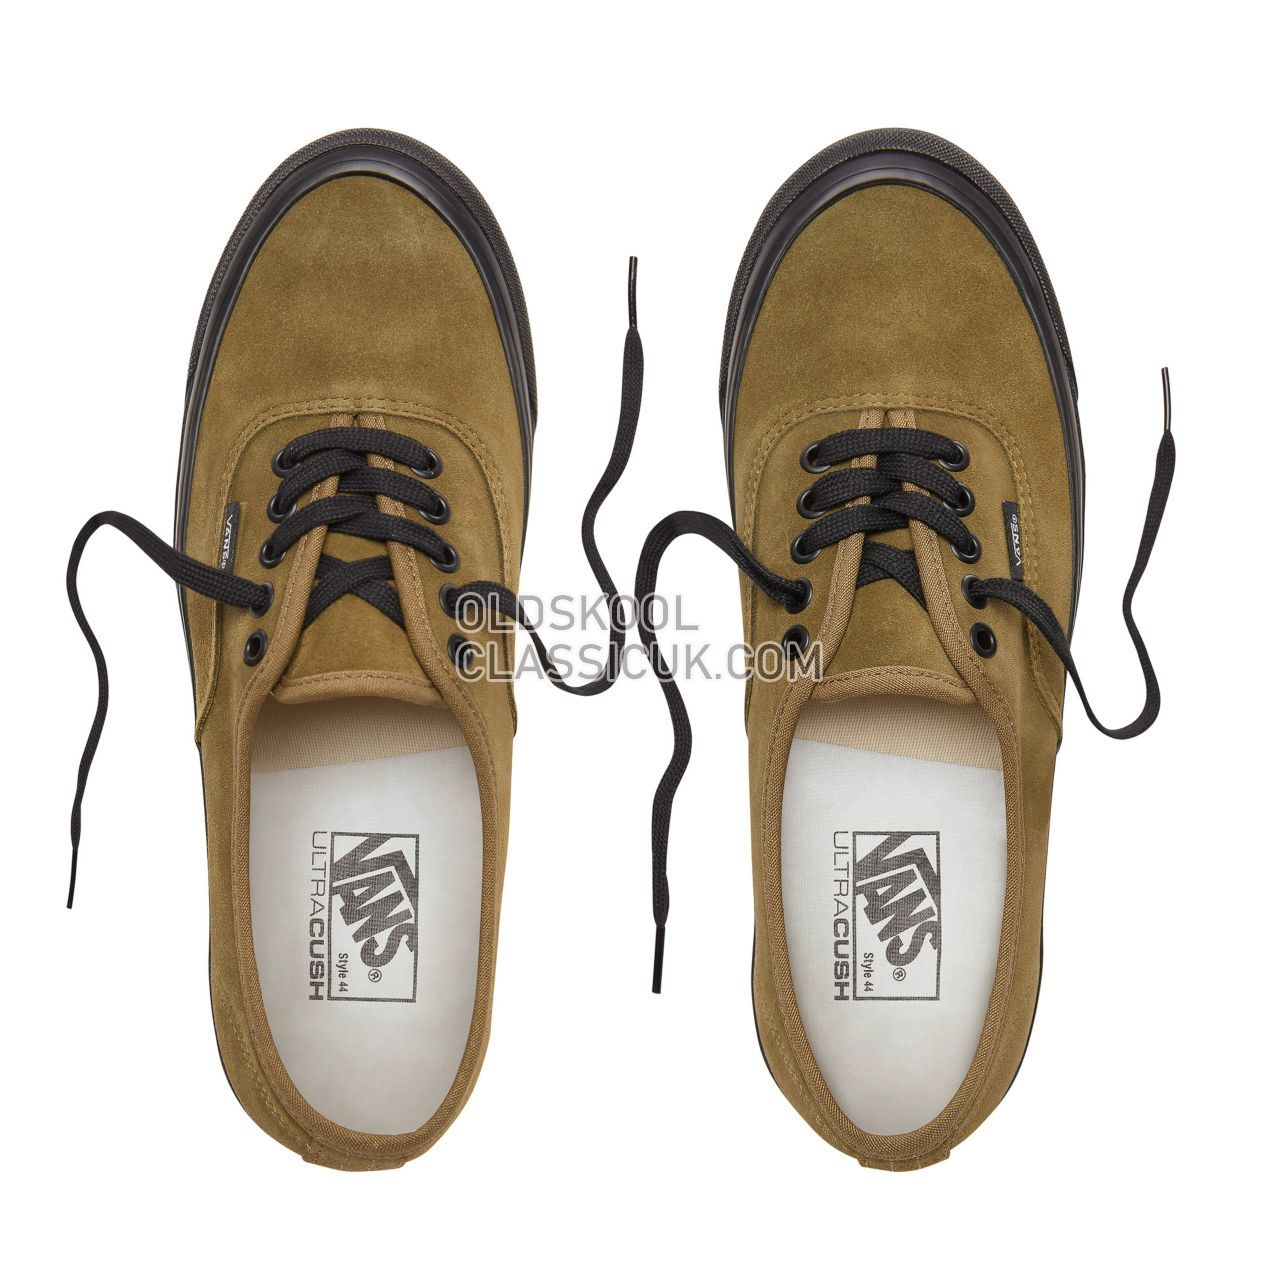 Vans Anaheim Factory Authentic 44 Dx Sneakers Mens (Anaheim Factory) Og Olive/Suede VN0A38ENUL3 Shoes